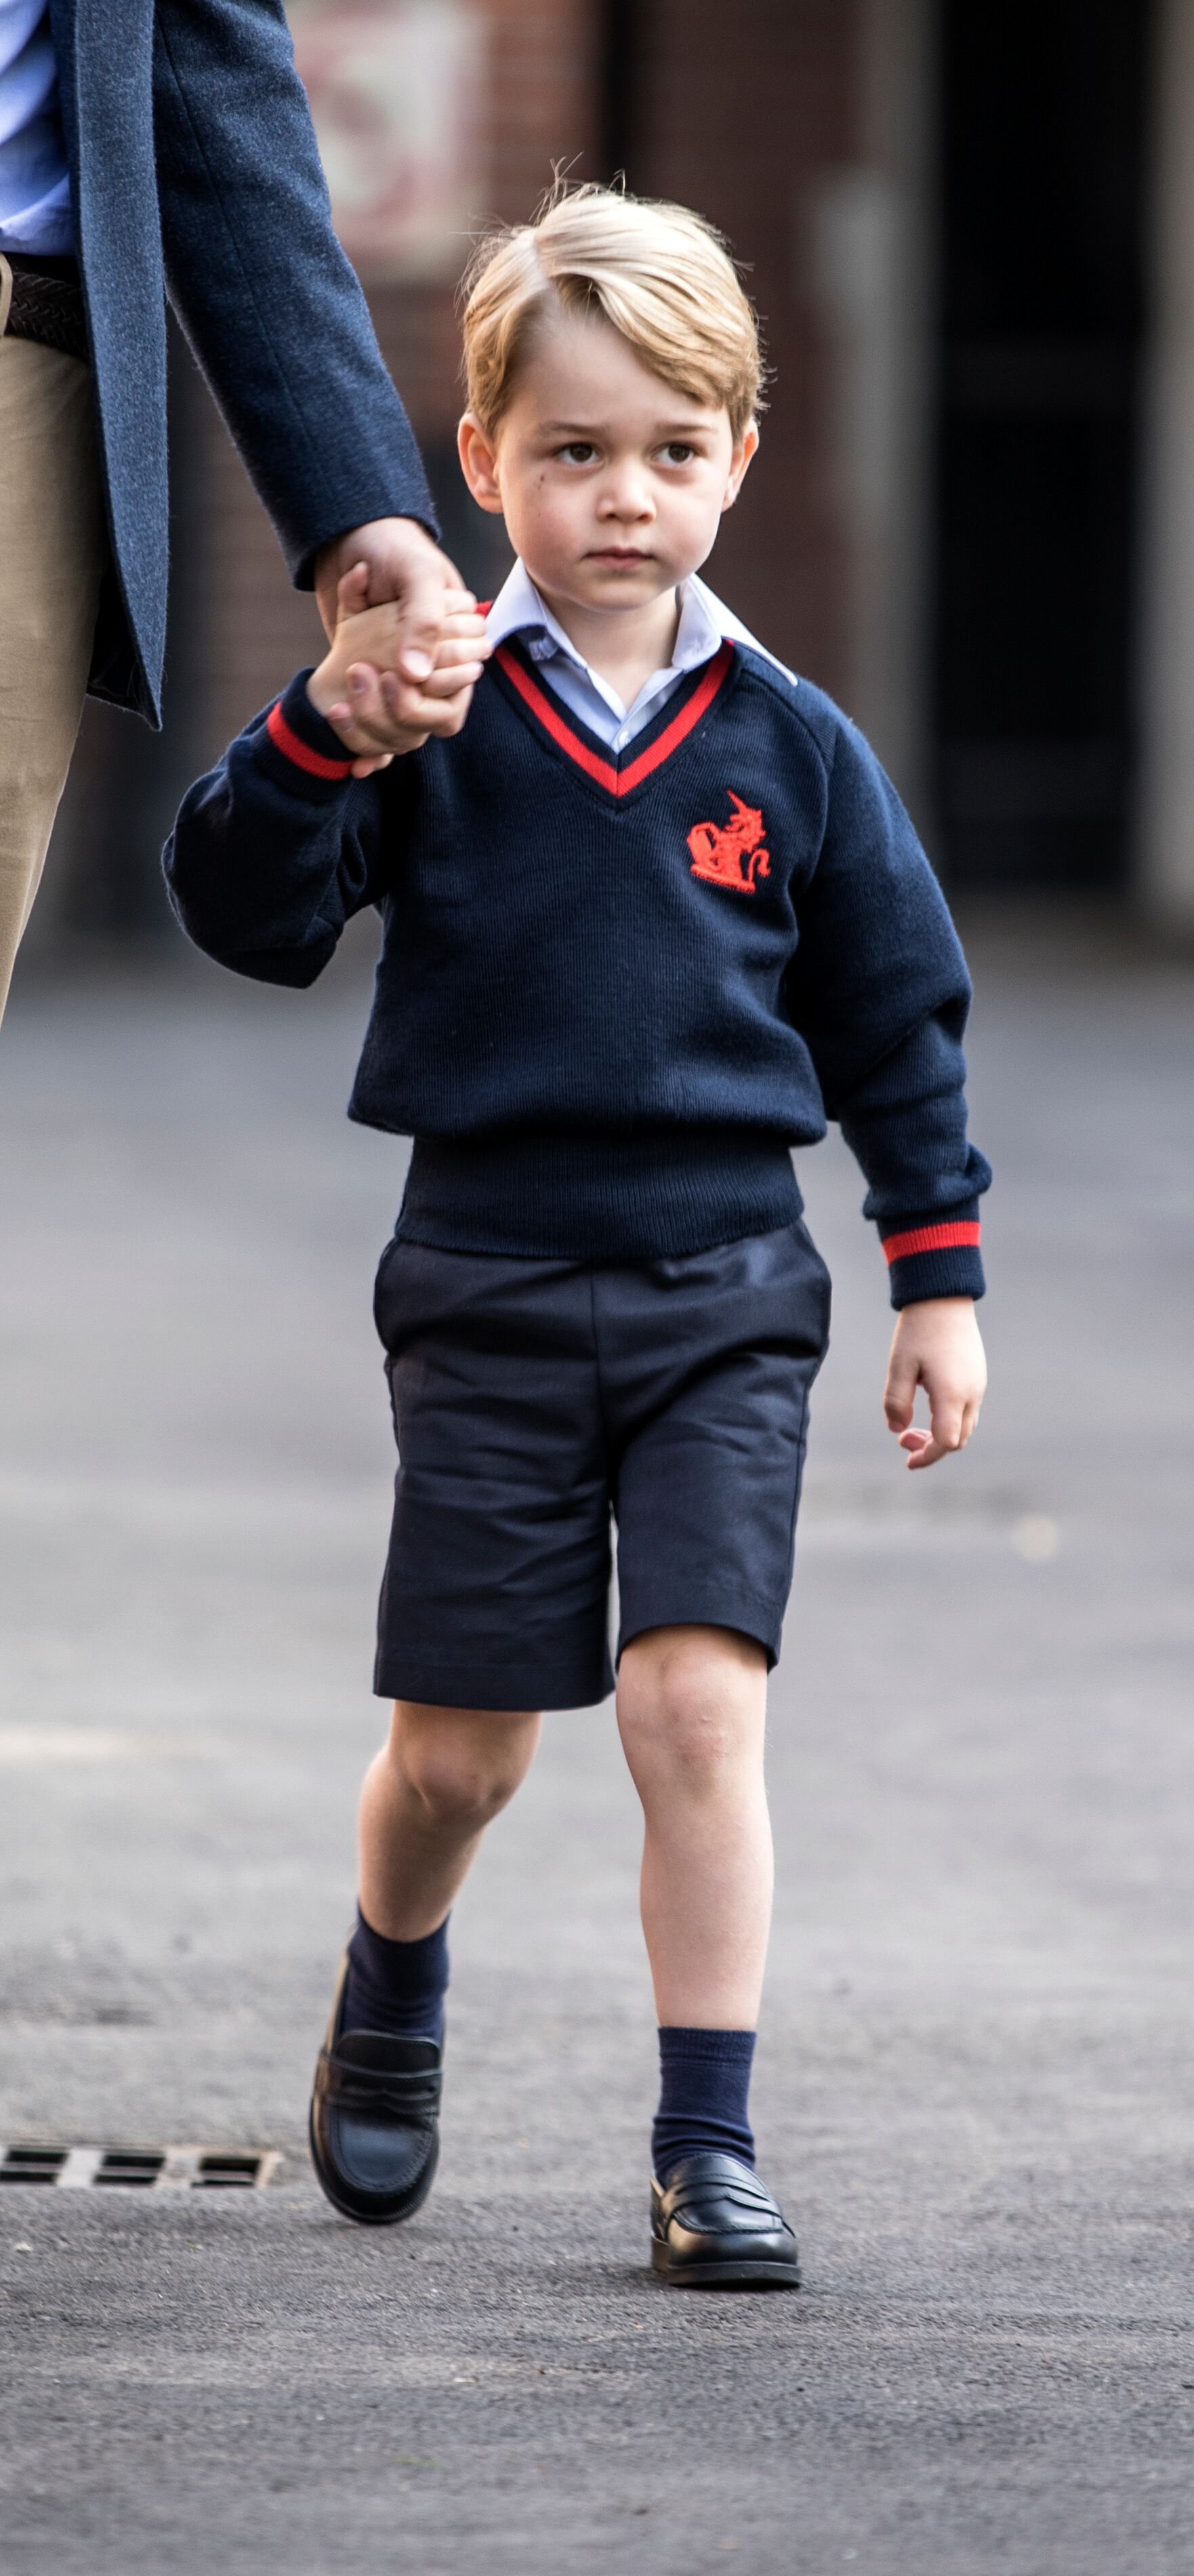 Prince George of Cambridge arrives for his first day of school at Thomas's Battersea.   Source: Getty Images